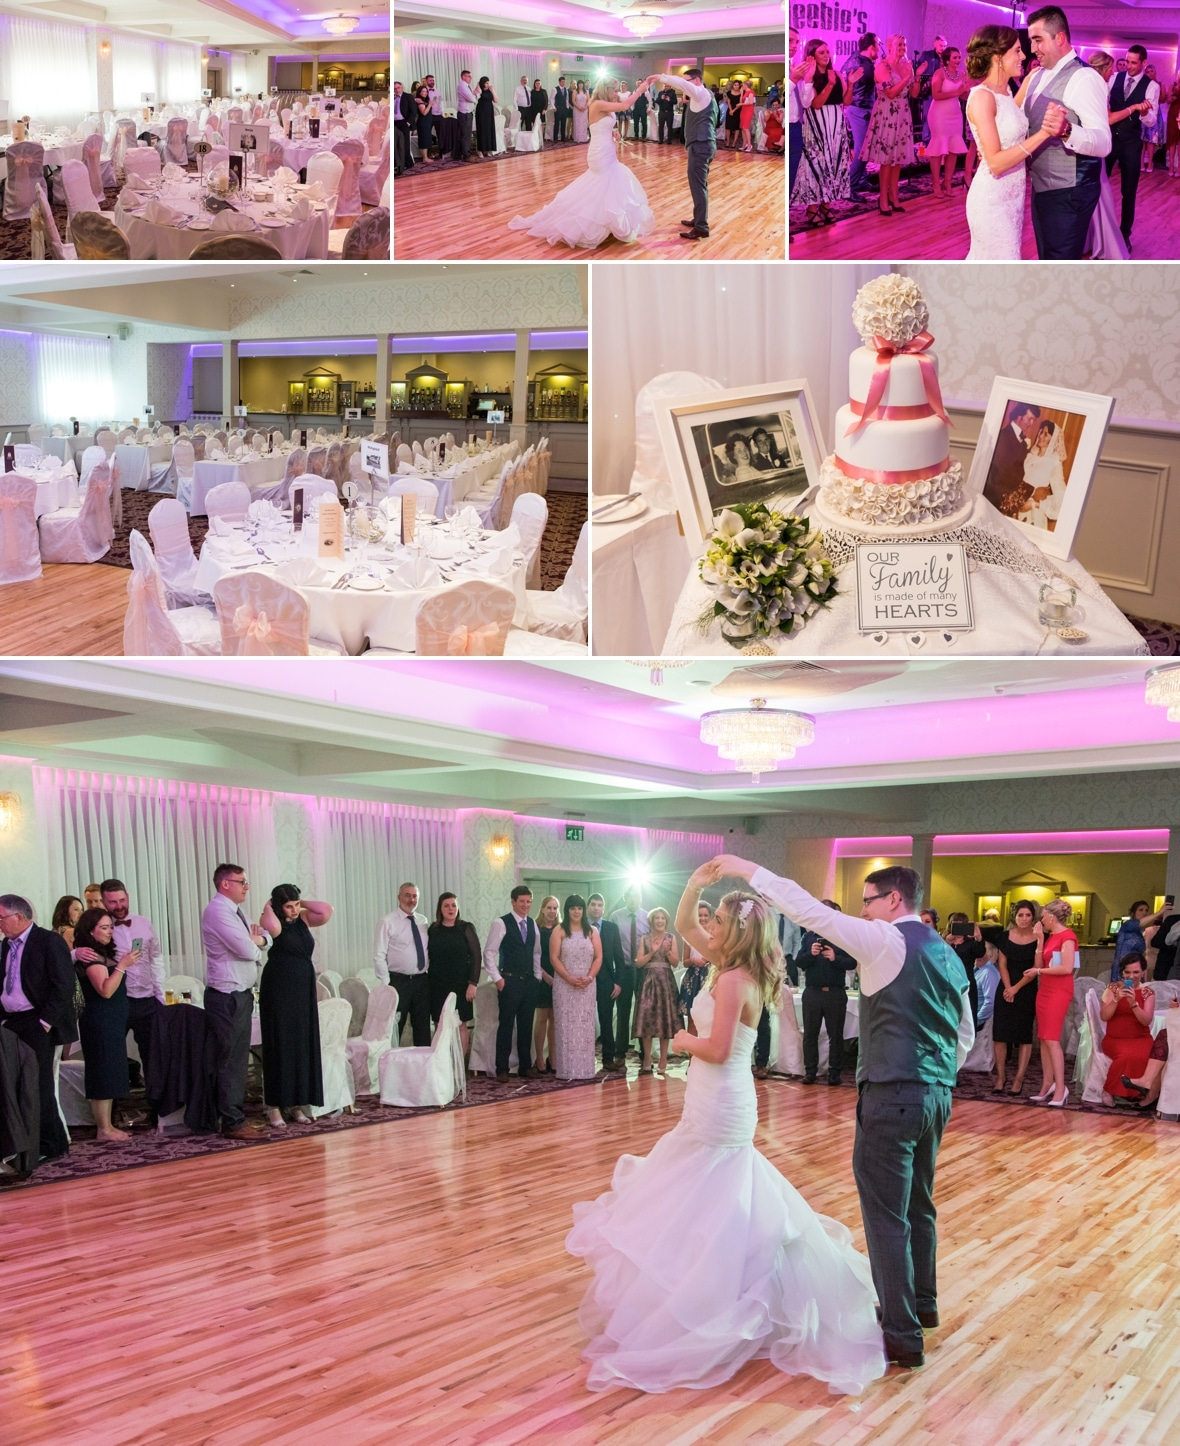 Abbey Hotel Roscommon Wedding Venue